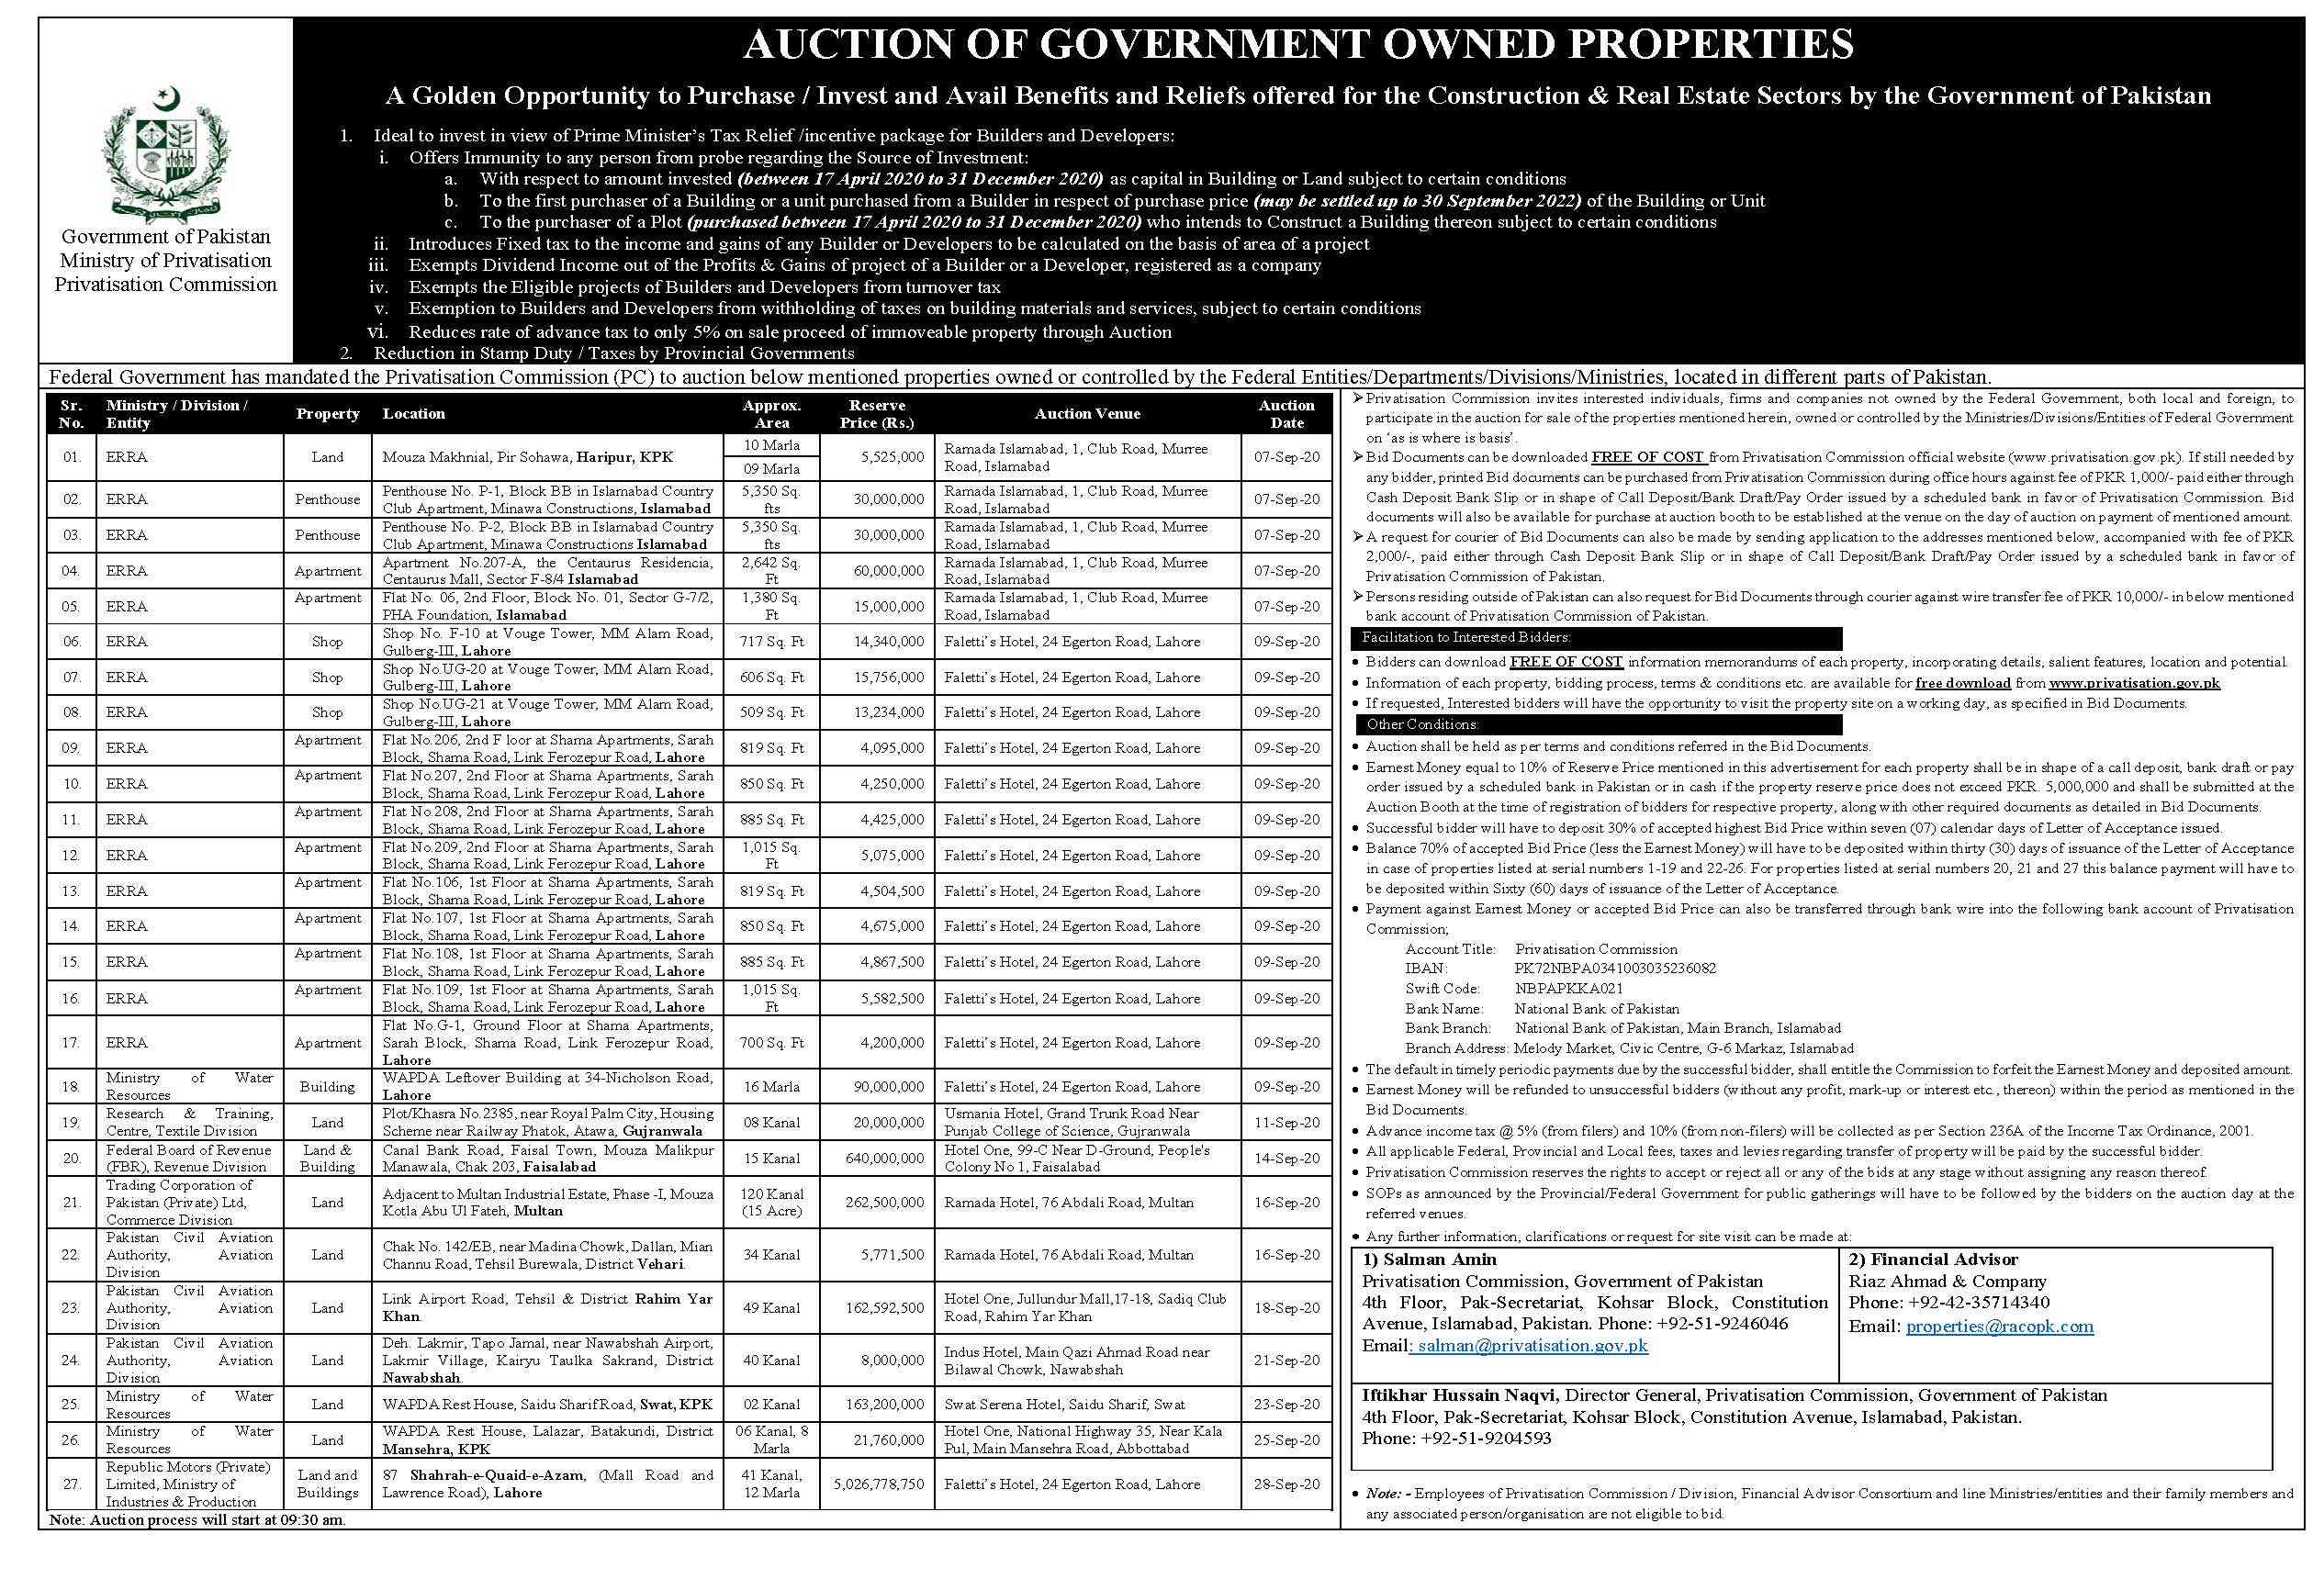 Auction of Government Owned Properties - A Golden opportunity to Purchase / Invest